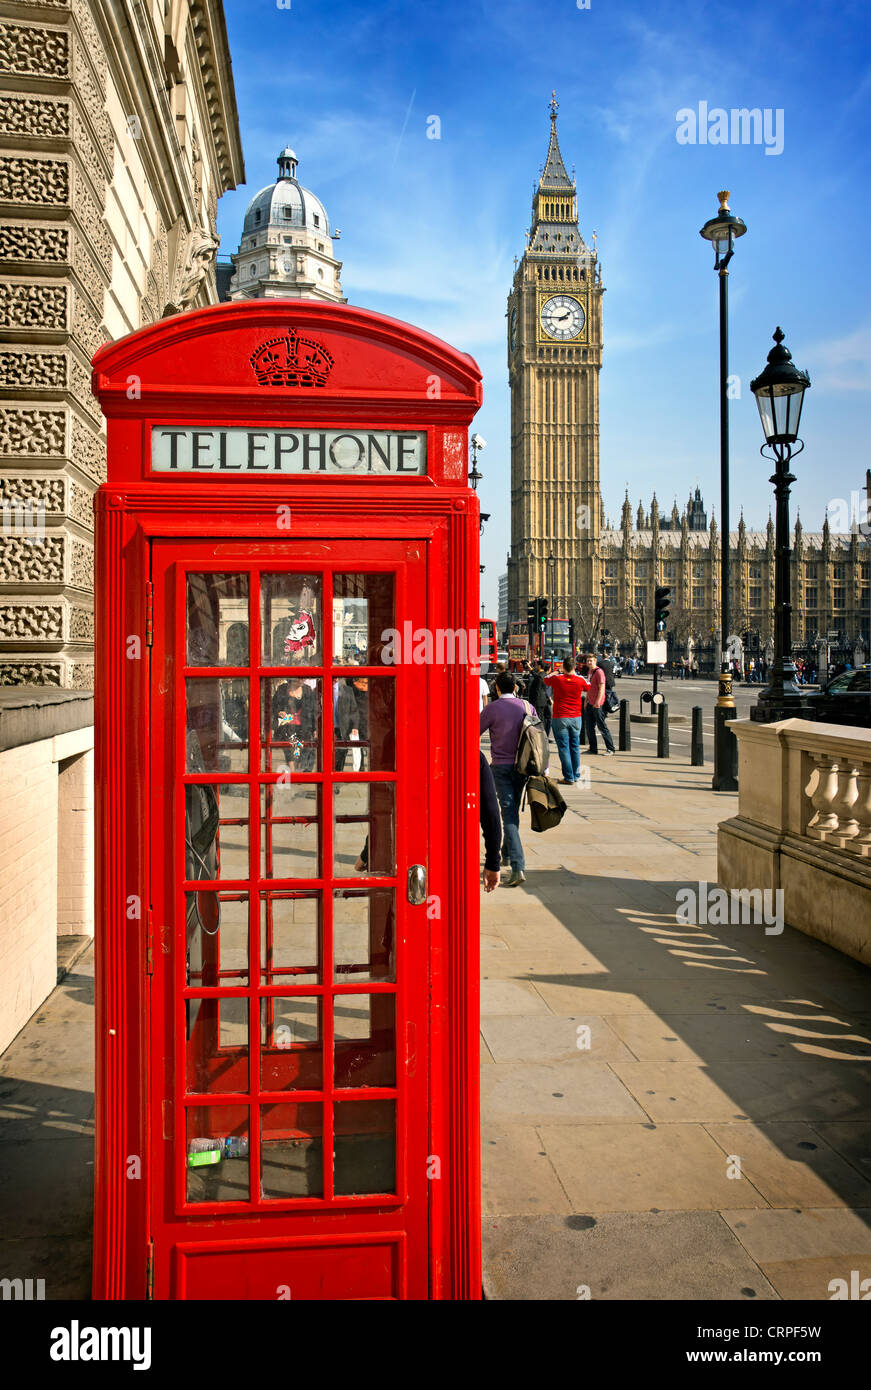 A red telephone box and the clock tower known as Big Ben at the Palace of Westminster. Stock Photo